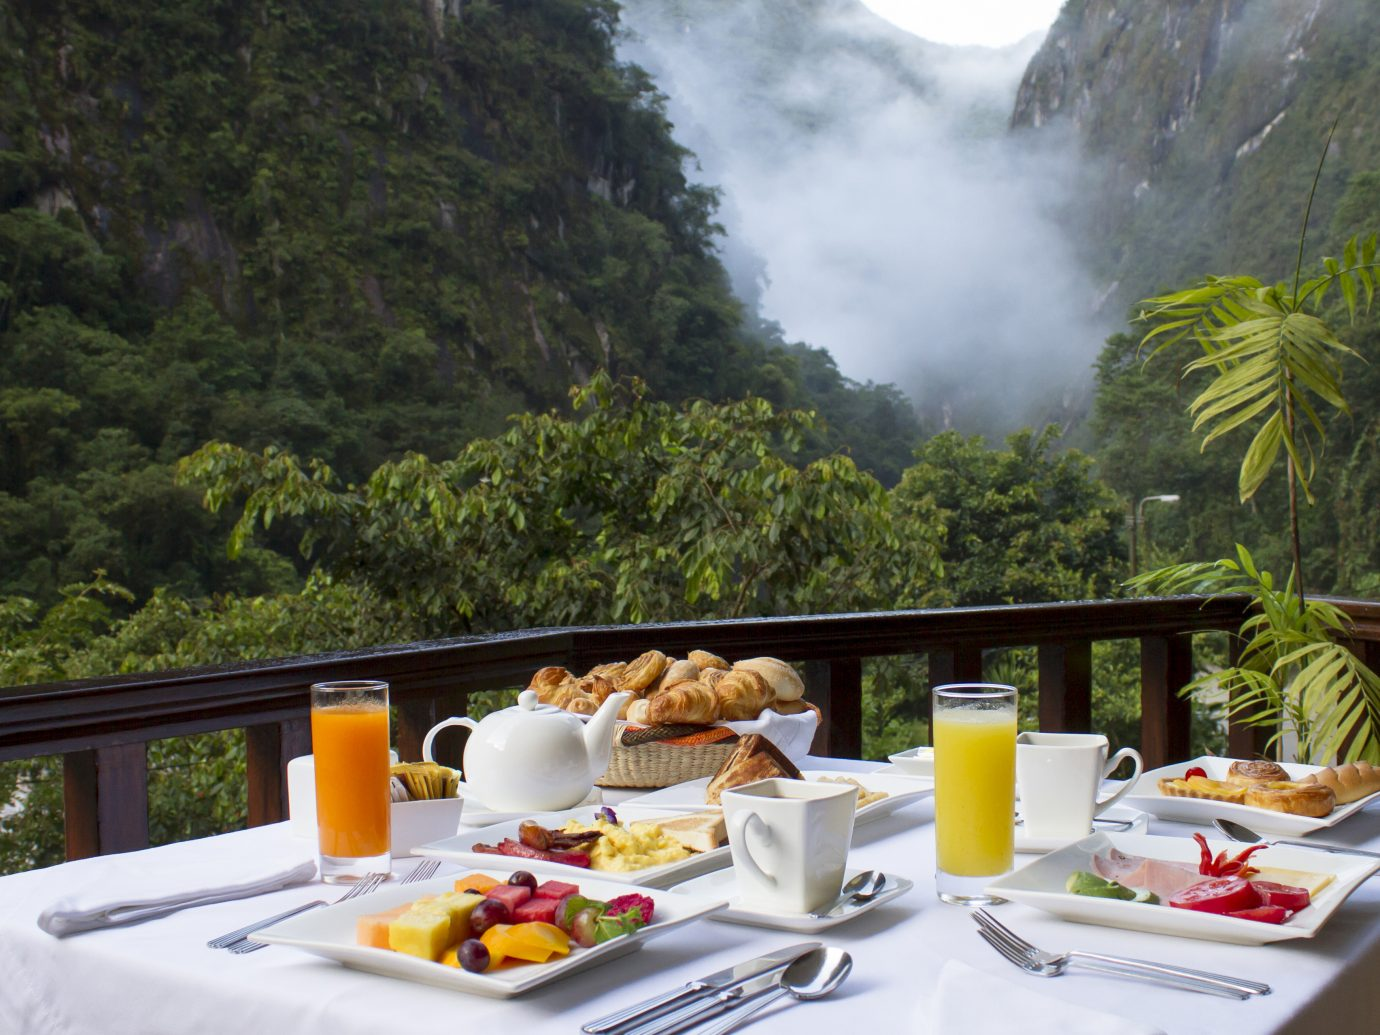 Beautiful breakfast with fruit juices, fruit and pastries overlooking steamy, lush mountains at SUMAQ